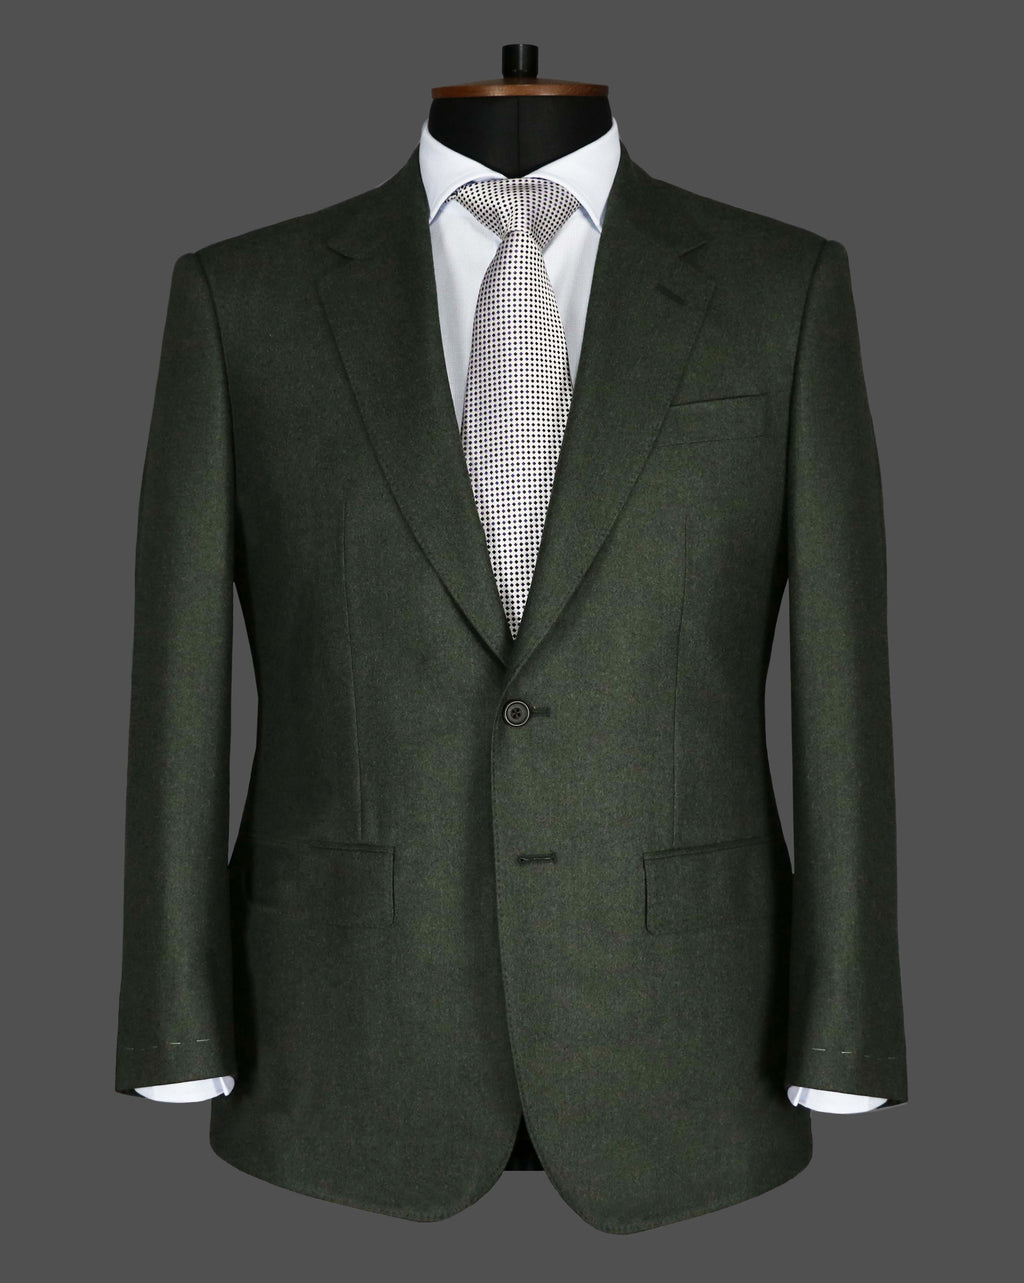 TLA039 - Plain Dark Green Suit